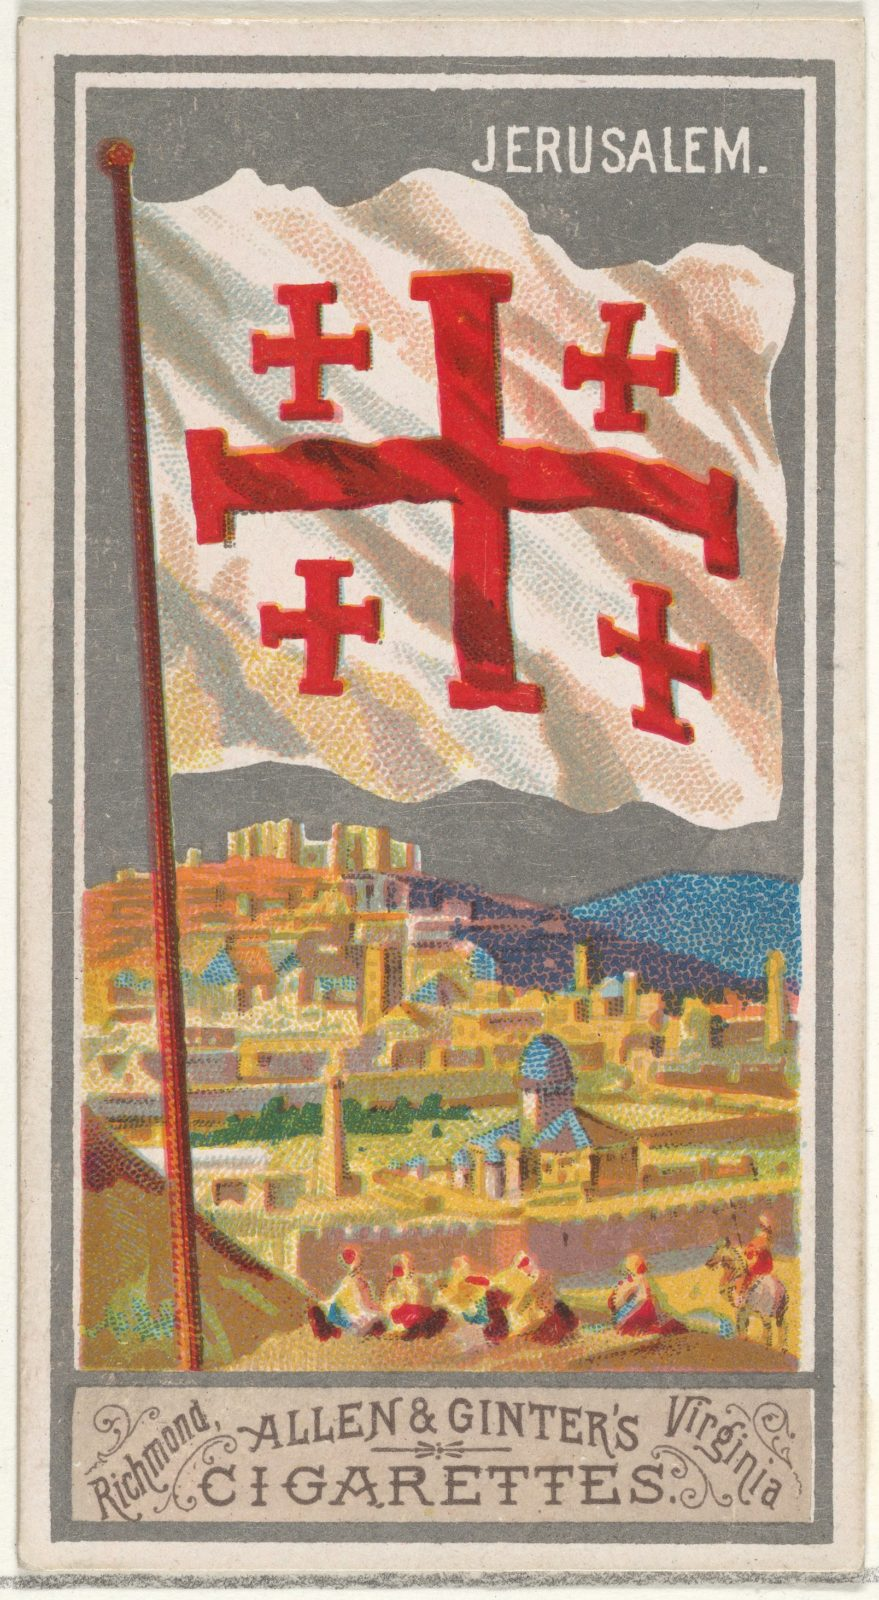 Jerusalem, from the City Flags series (N6) for Allen & Ginter Cigarettes Brands